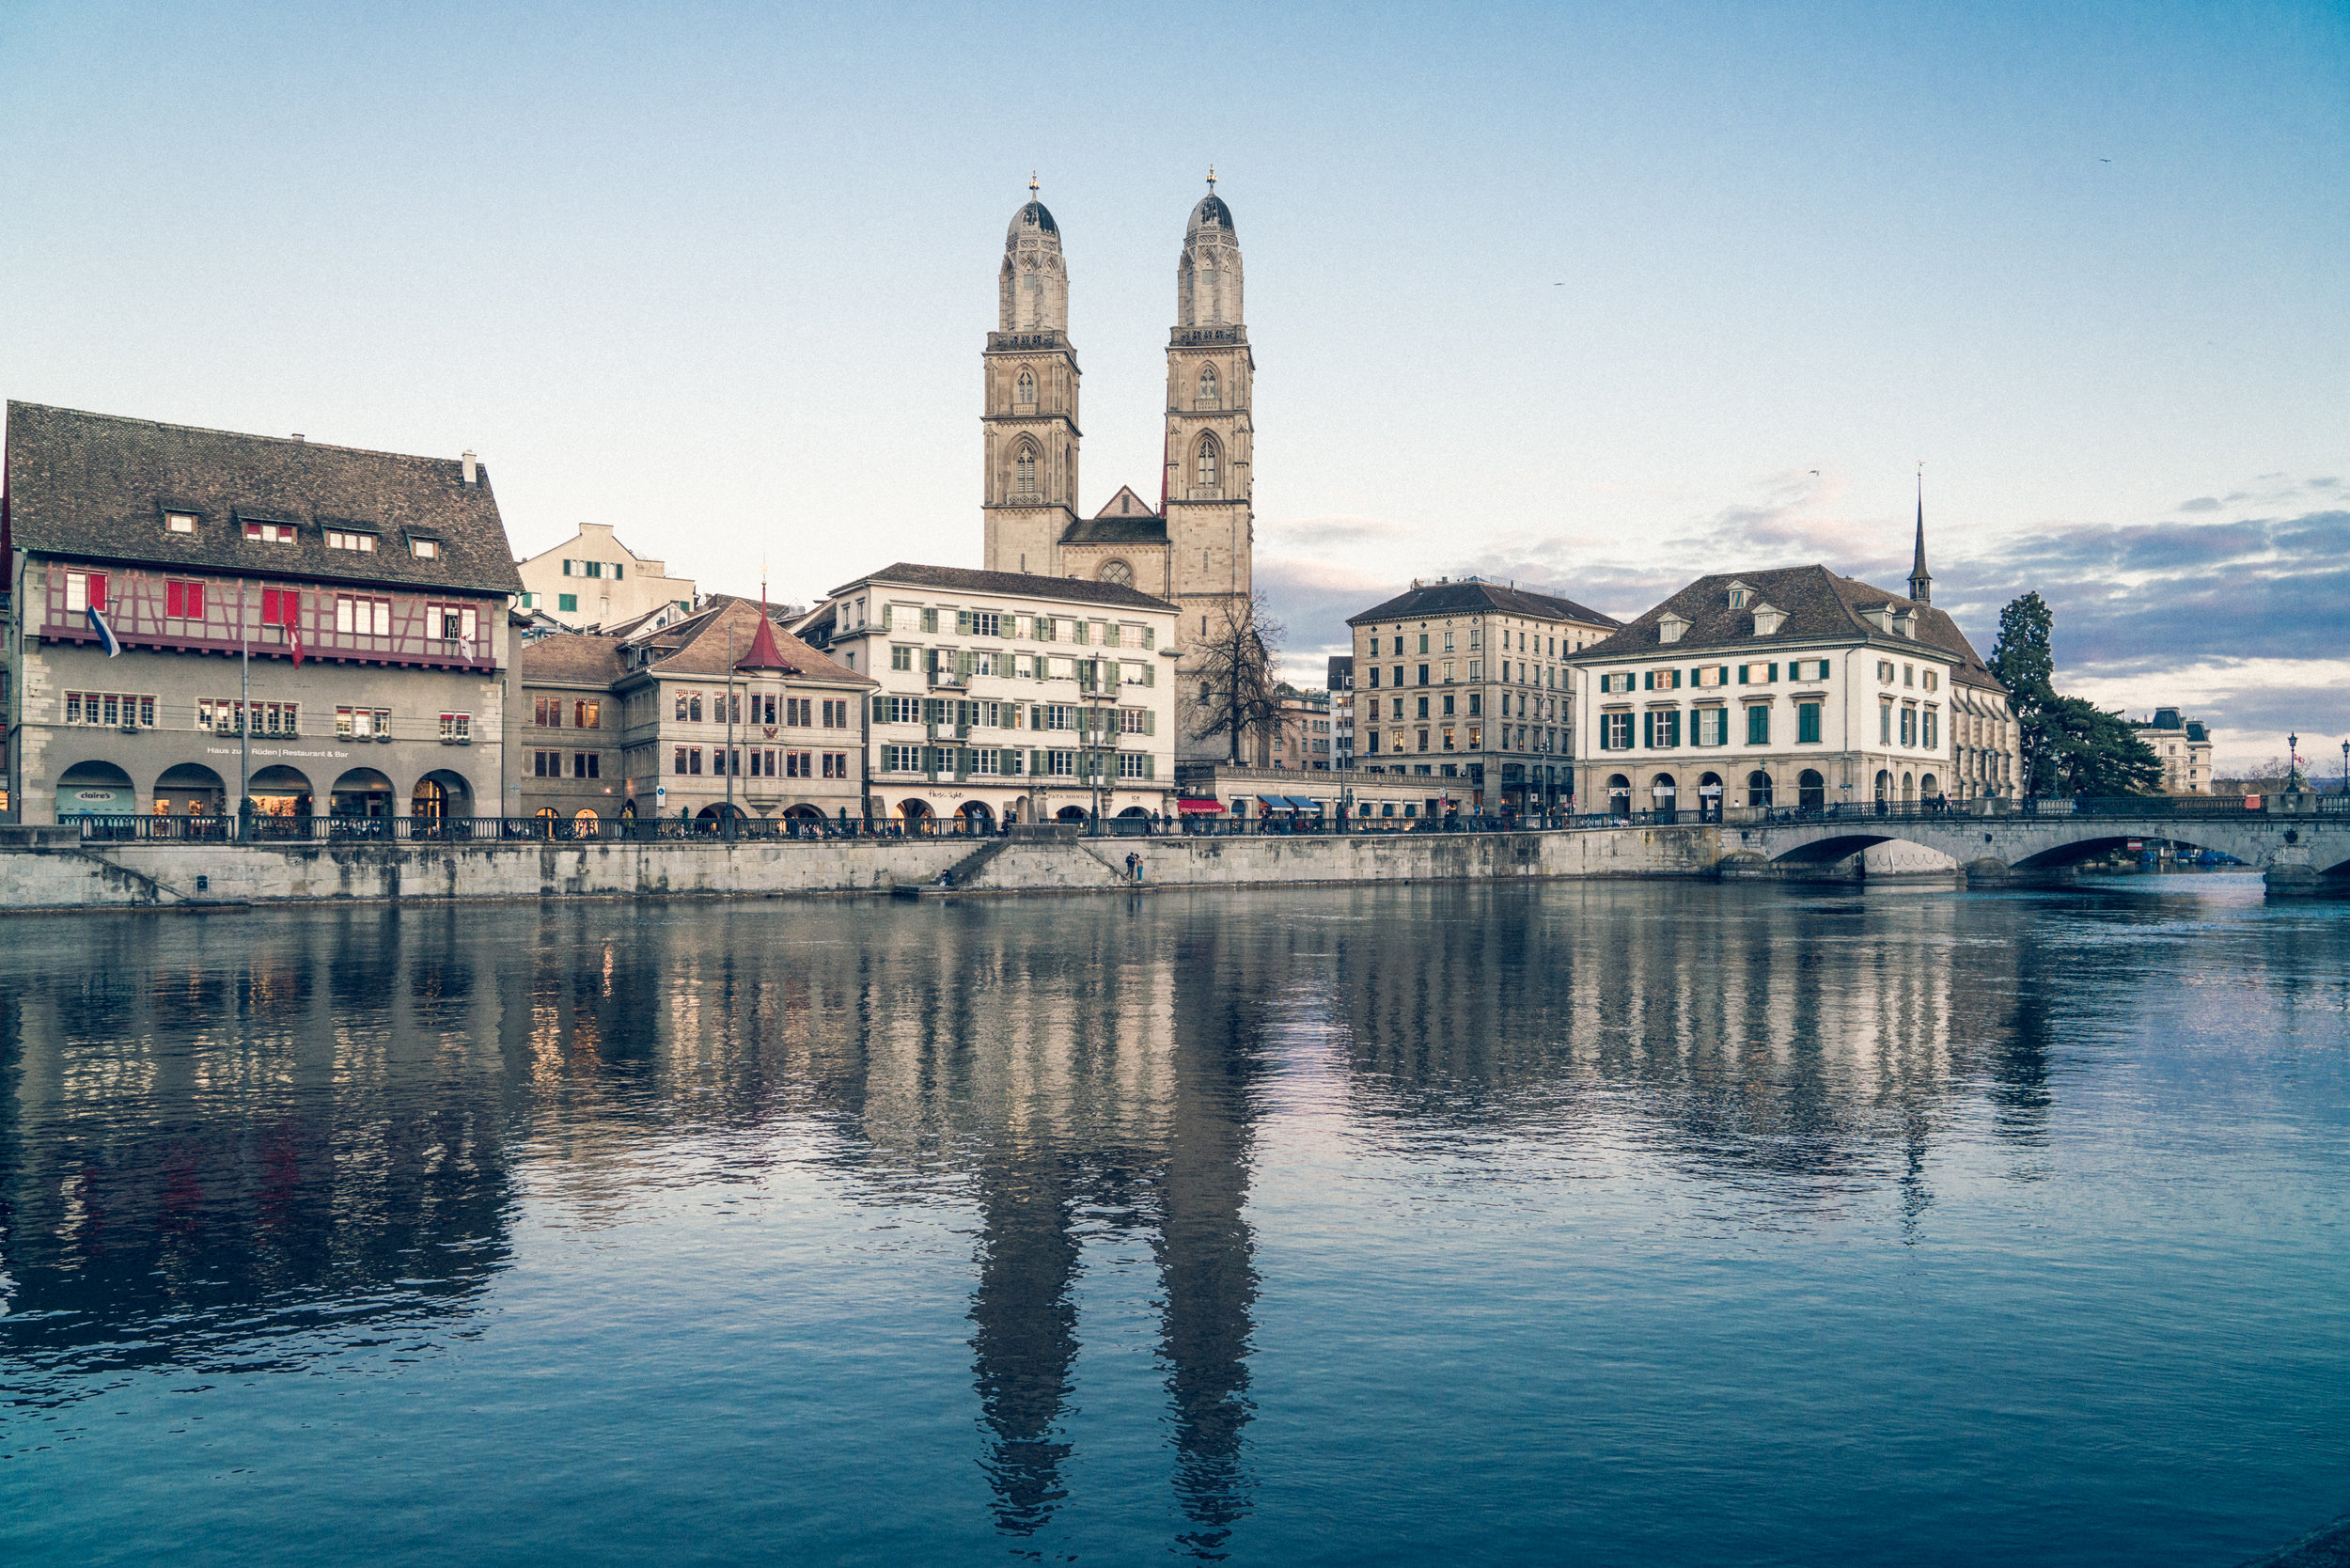 Jungian Winter Intensive - In Collaboration with The C.G. Jung InstituteZürich, SwitzerlandFebruary 16-23, 202034 Continuing Education Credits for Psychotherapists